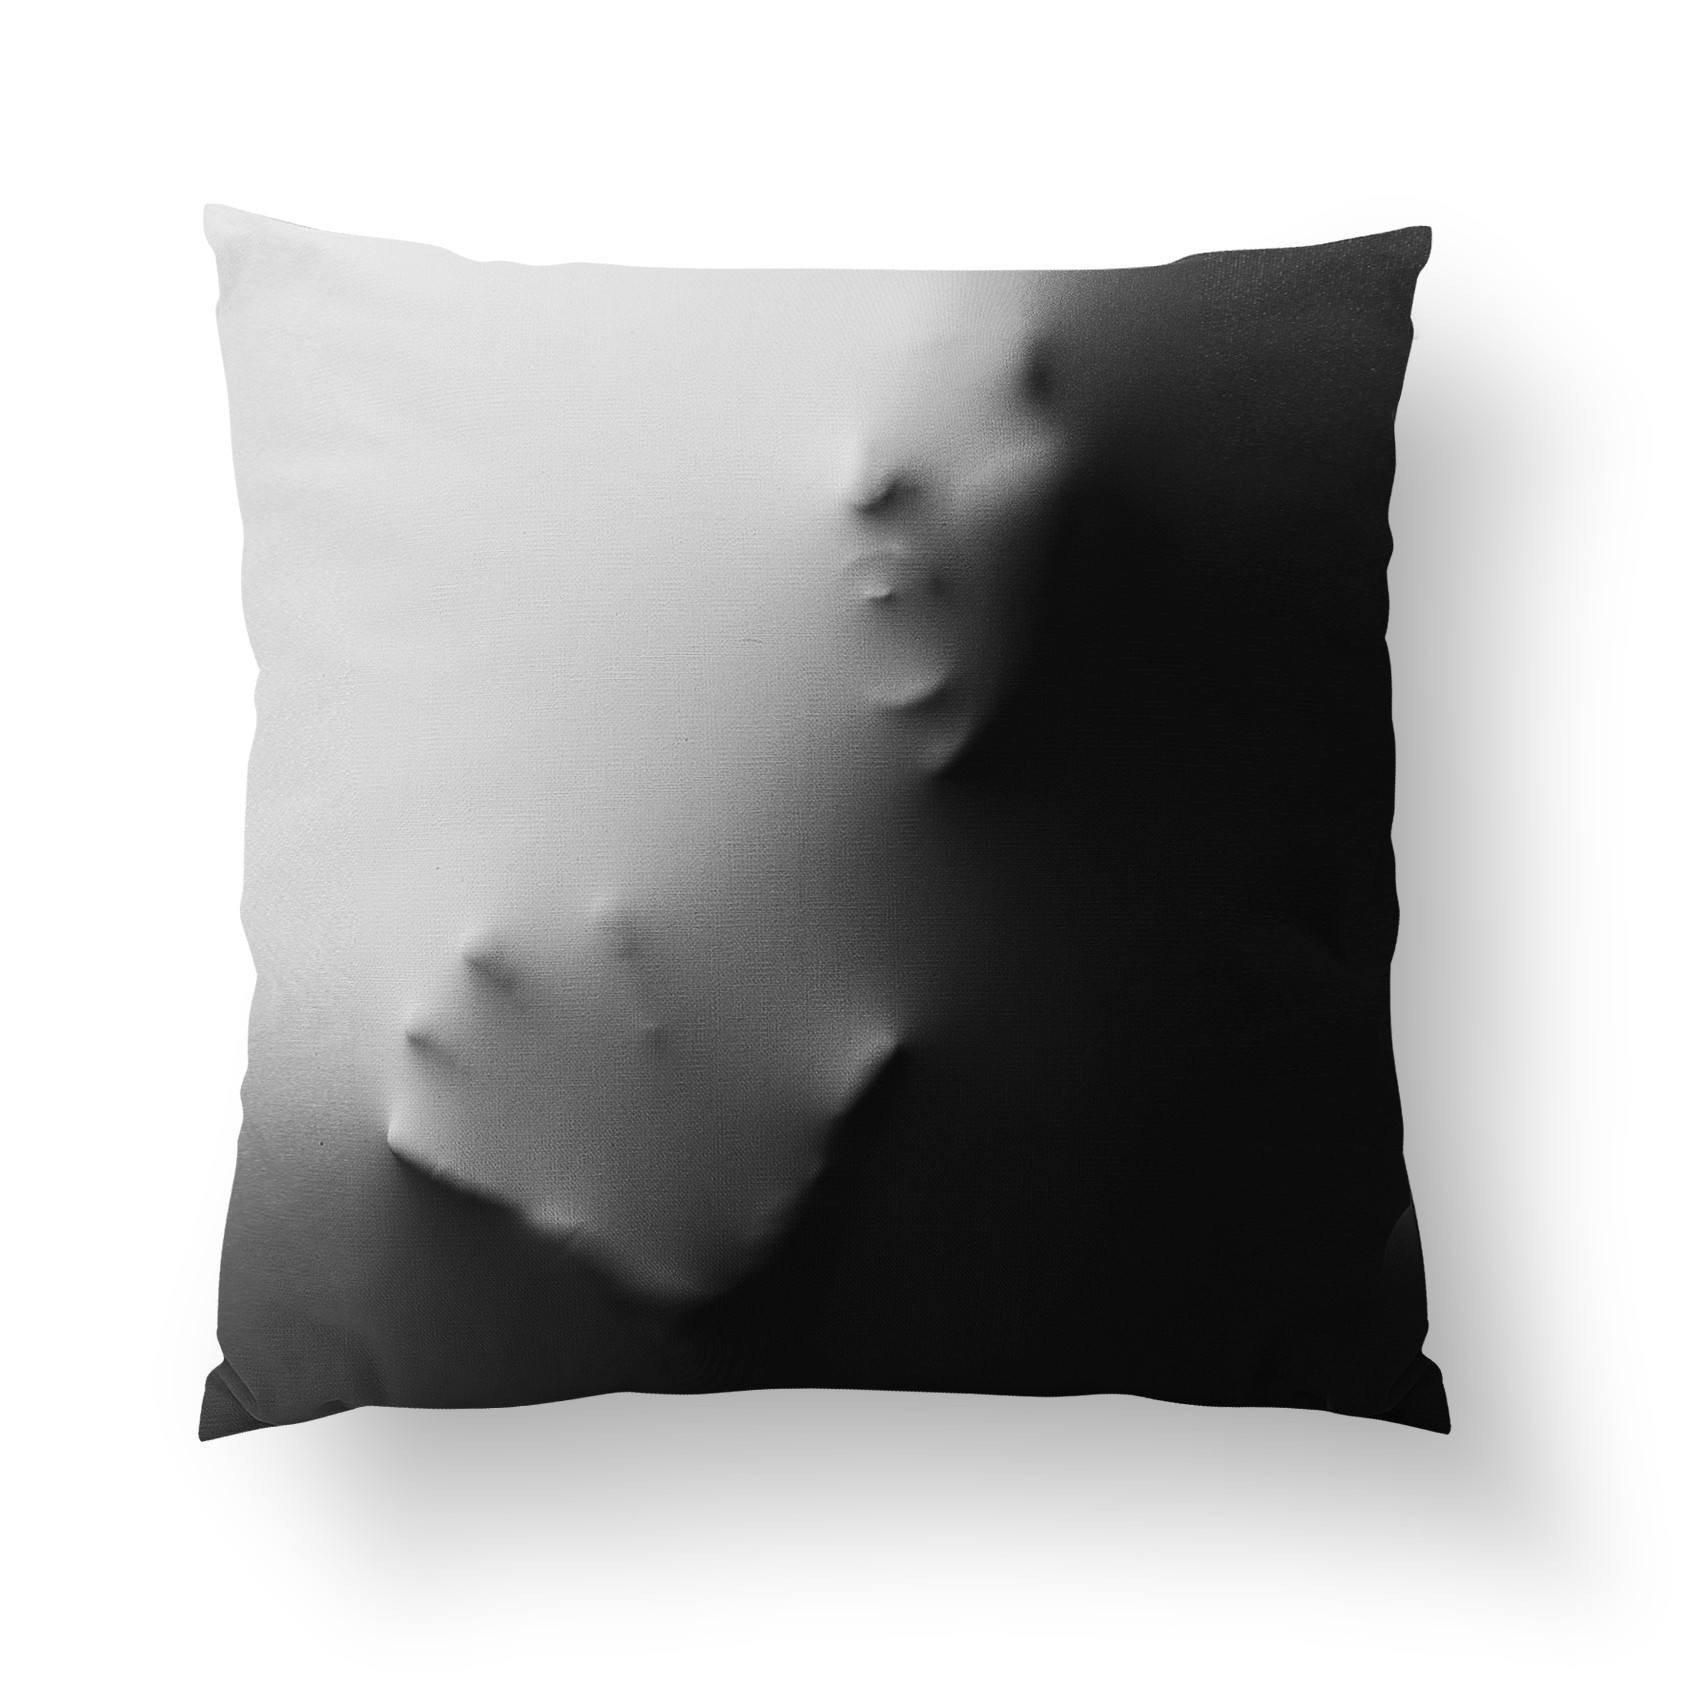 Halloween Pillow - Pillow Covers - W.FRANCIS